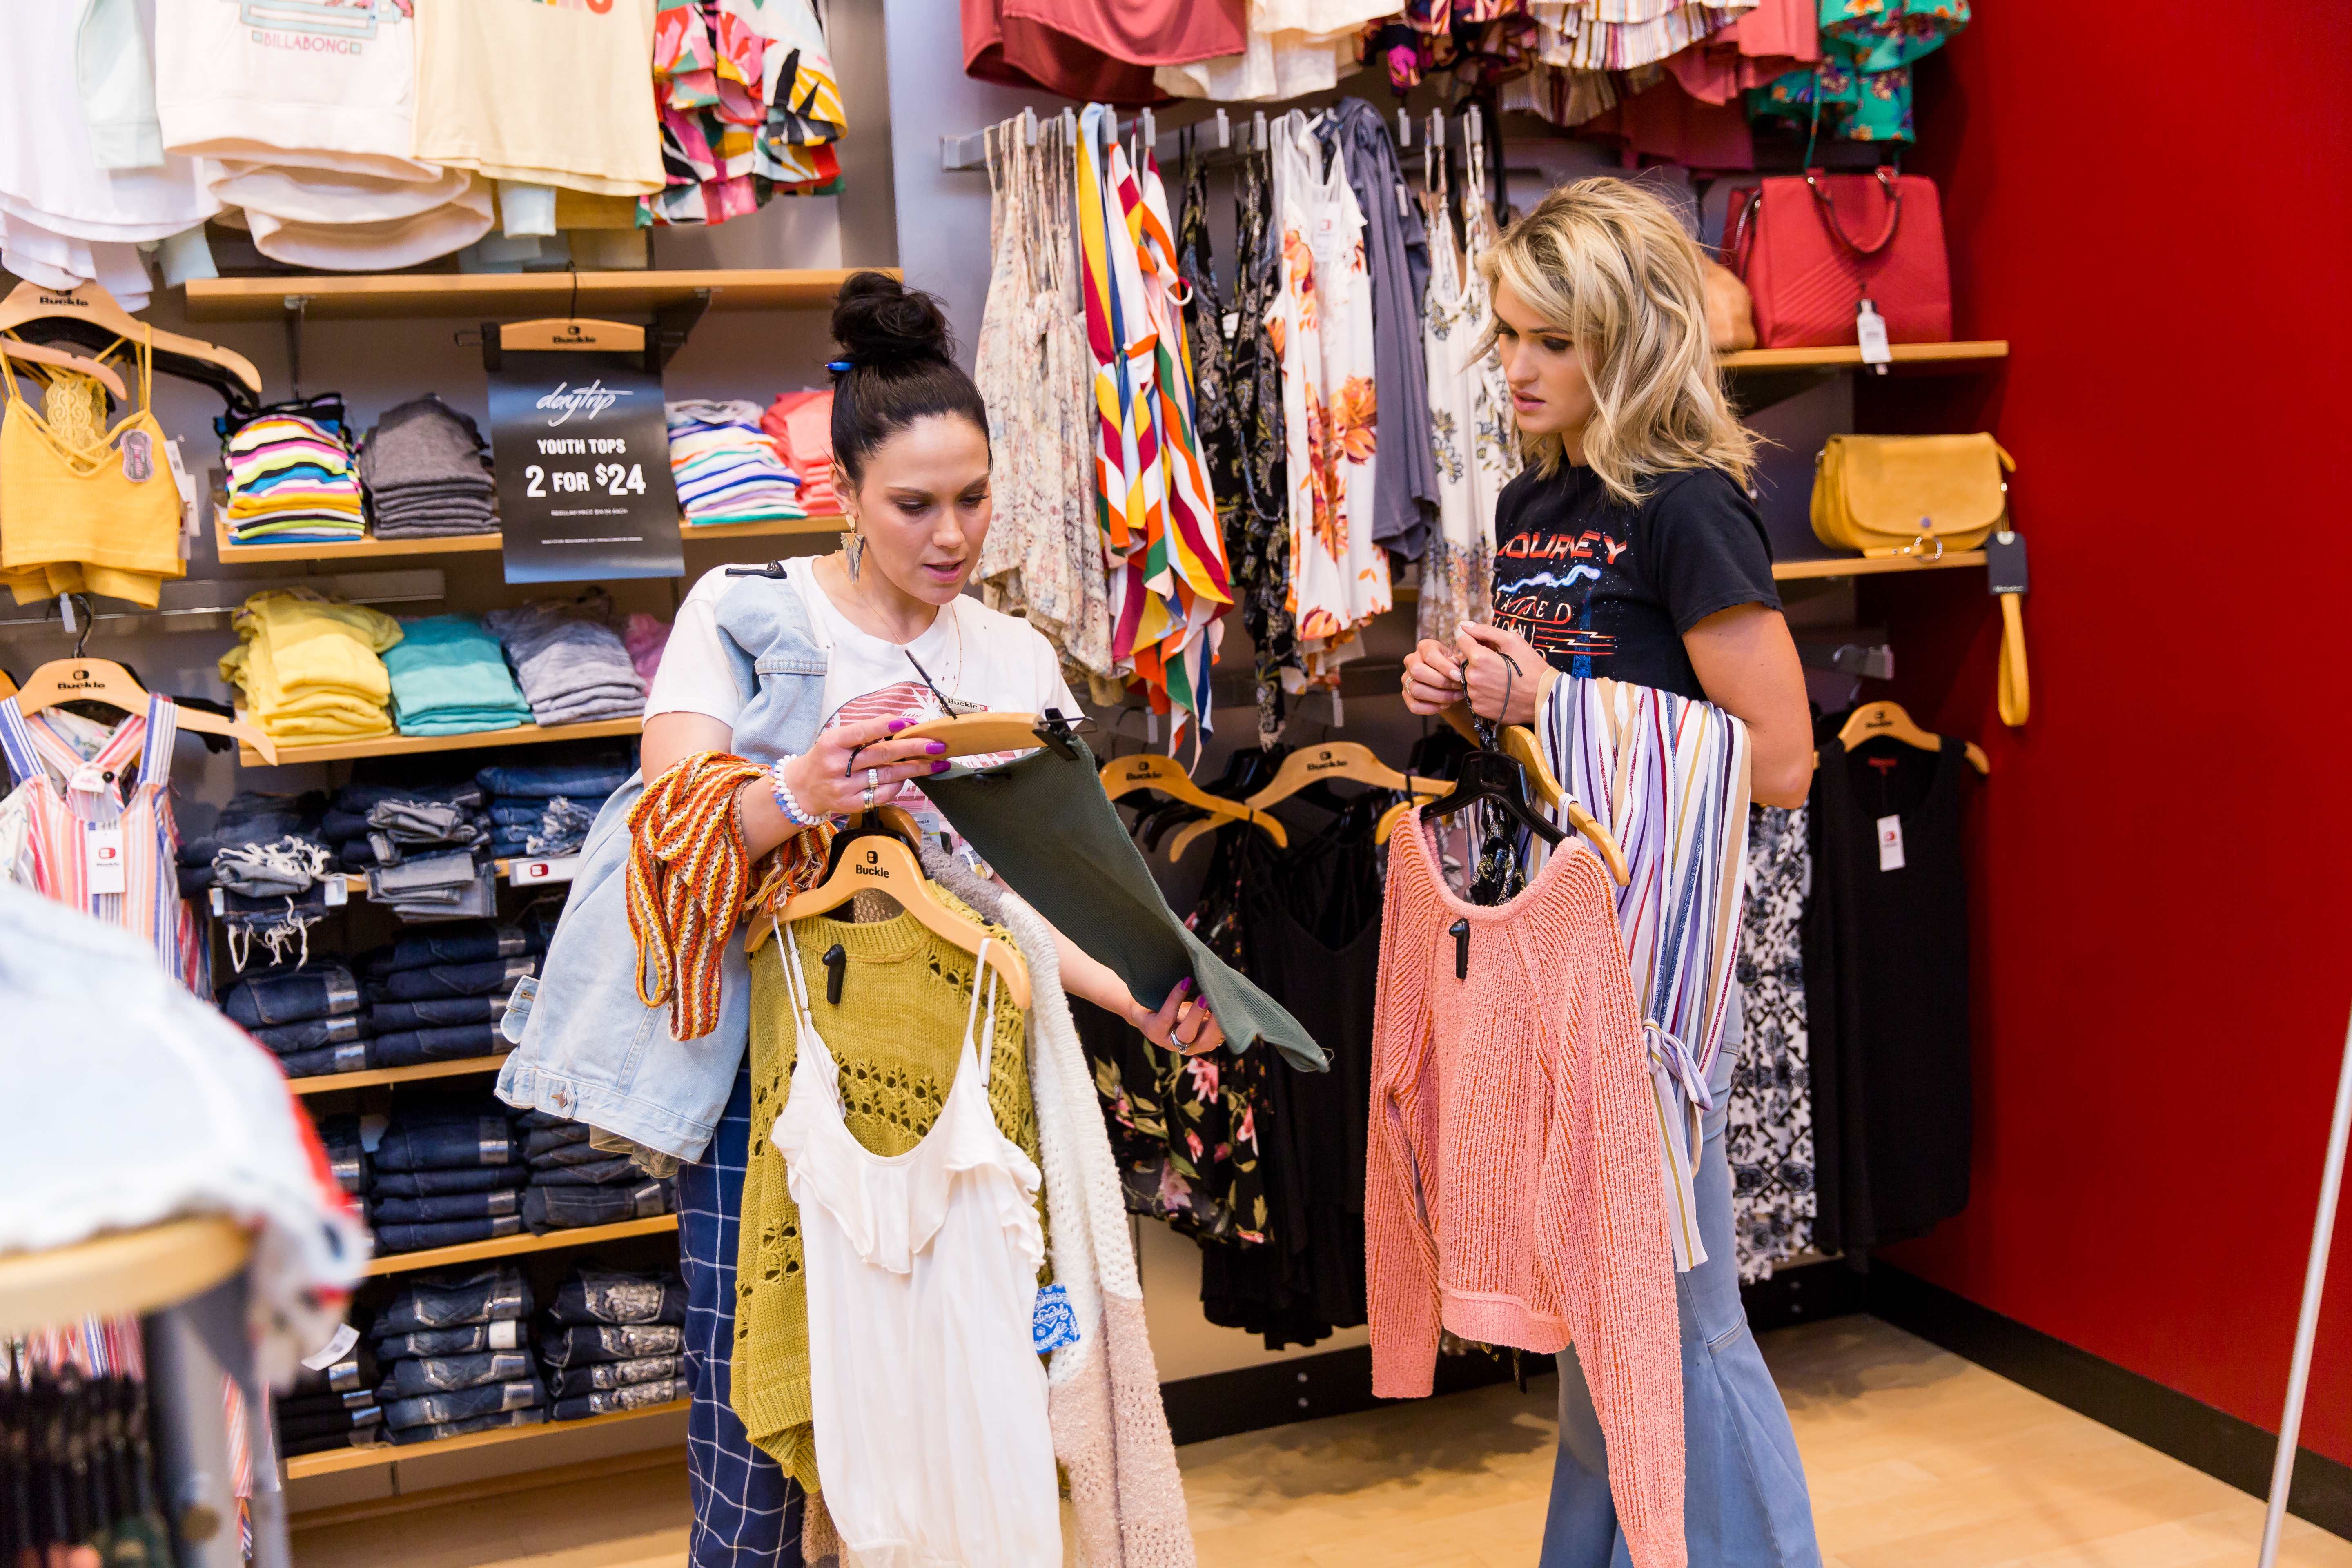 Miss Nebraska USA, Lex Najarian, with store manager Keisha Johnson during her personal styling session at Hilltop Mall Buckle in Kearney Nebraska